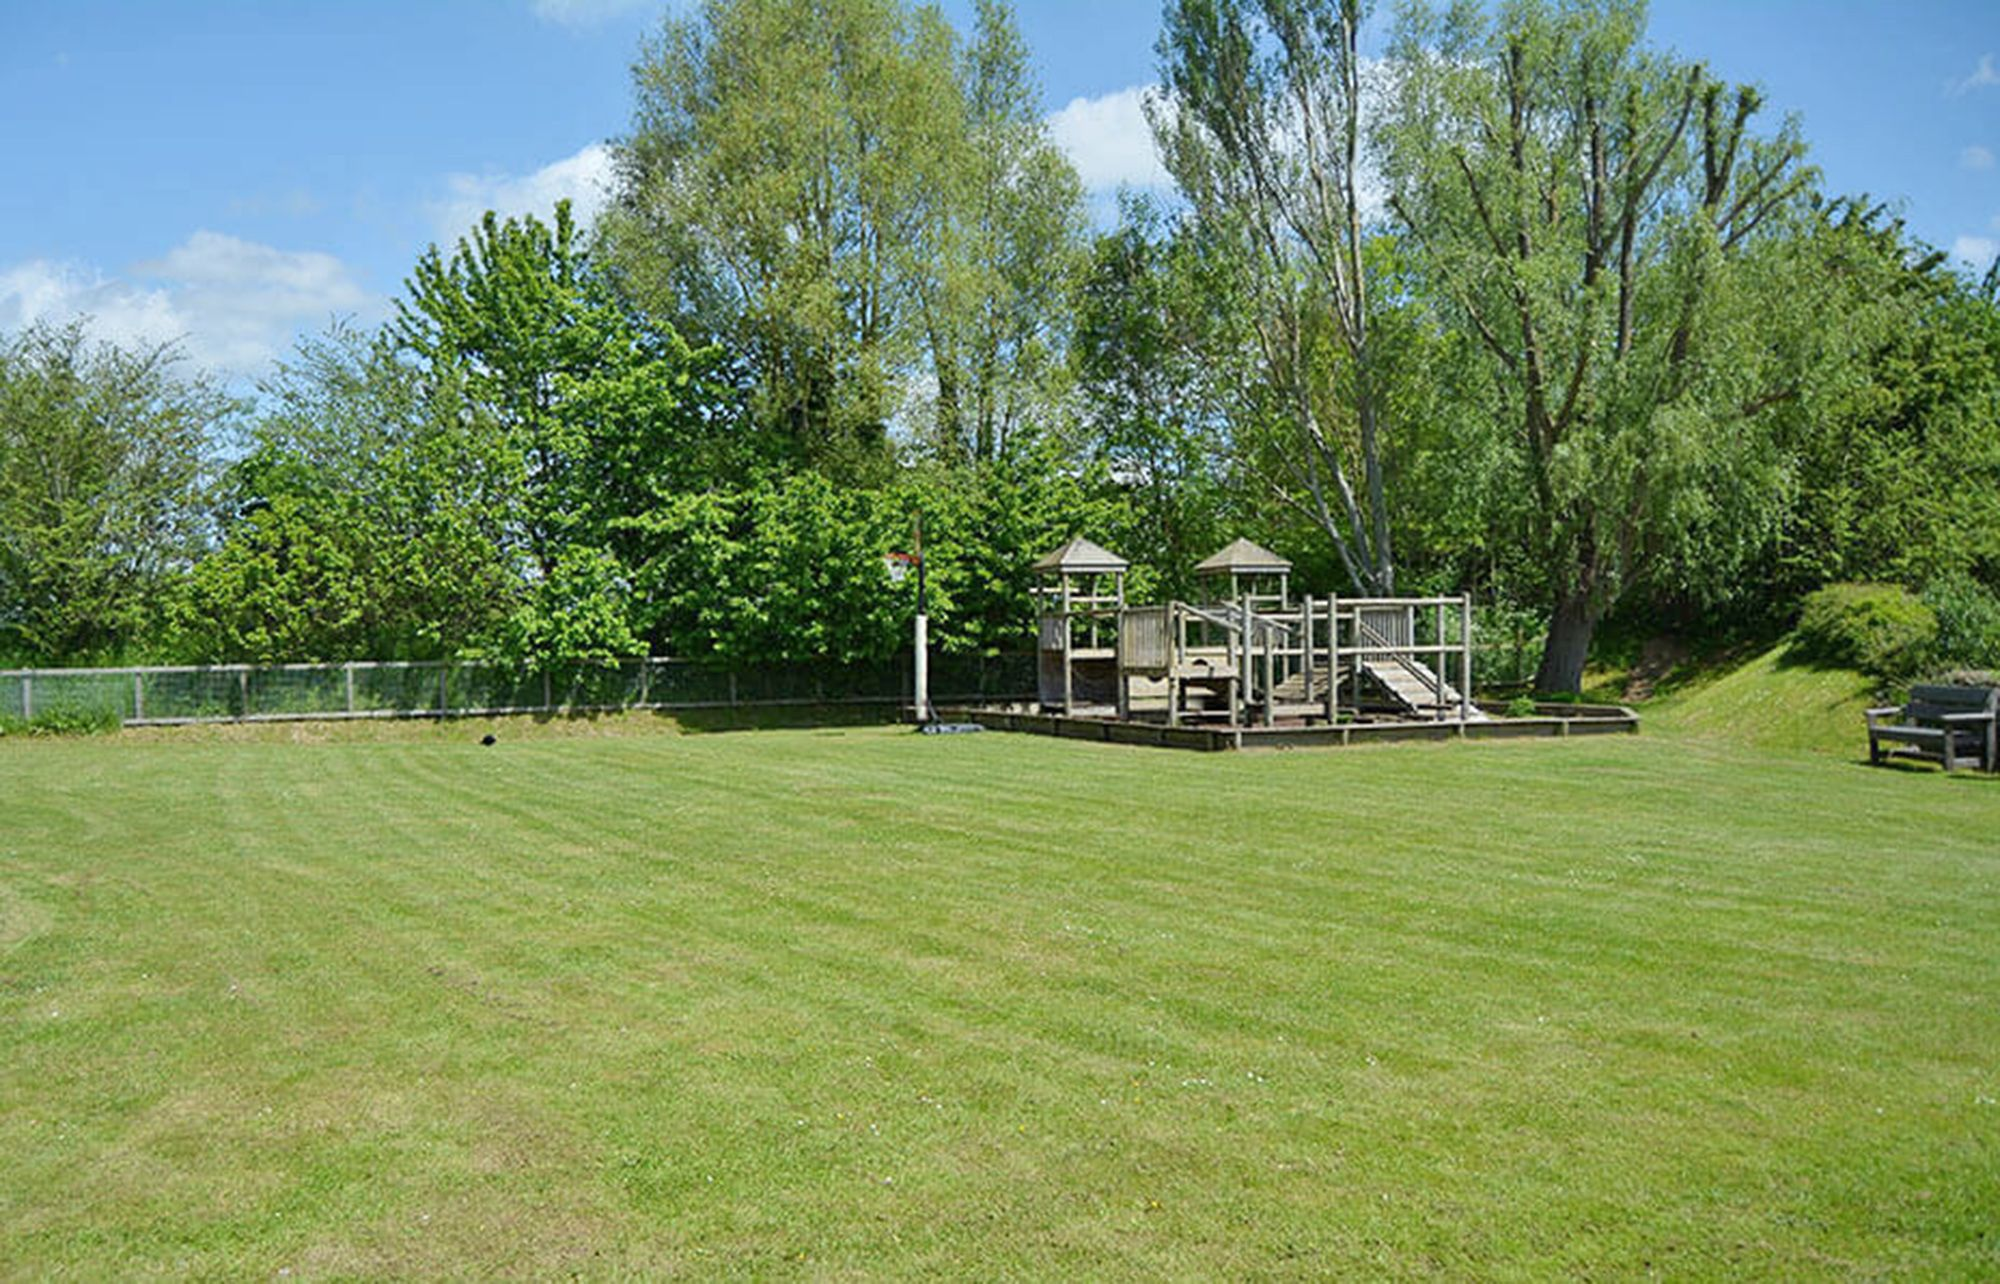 There is a large children's play area within 50 metres of the lake house